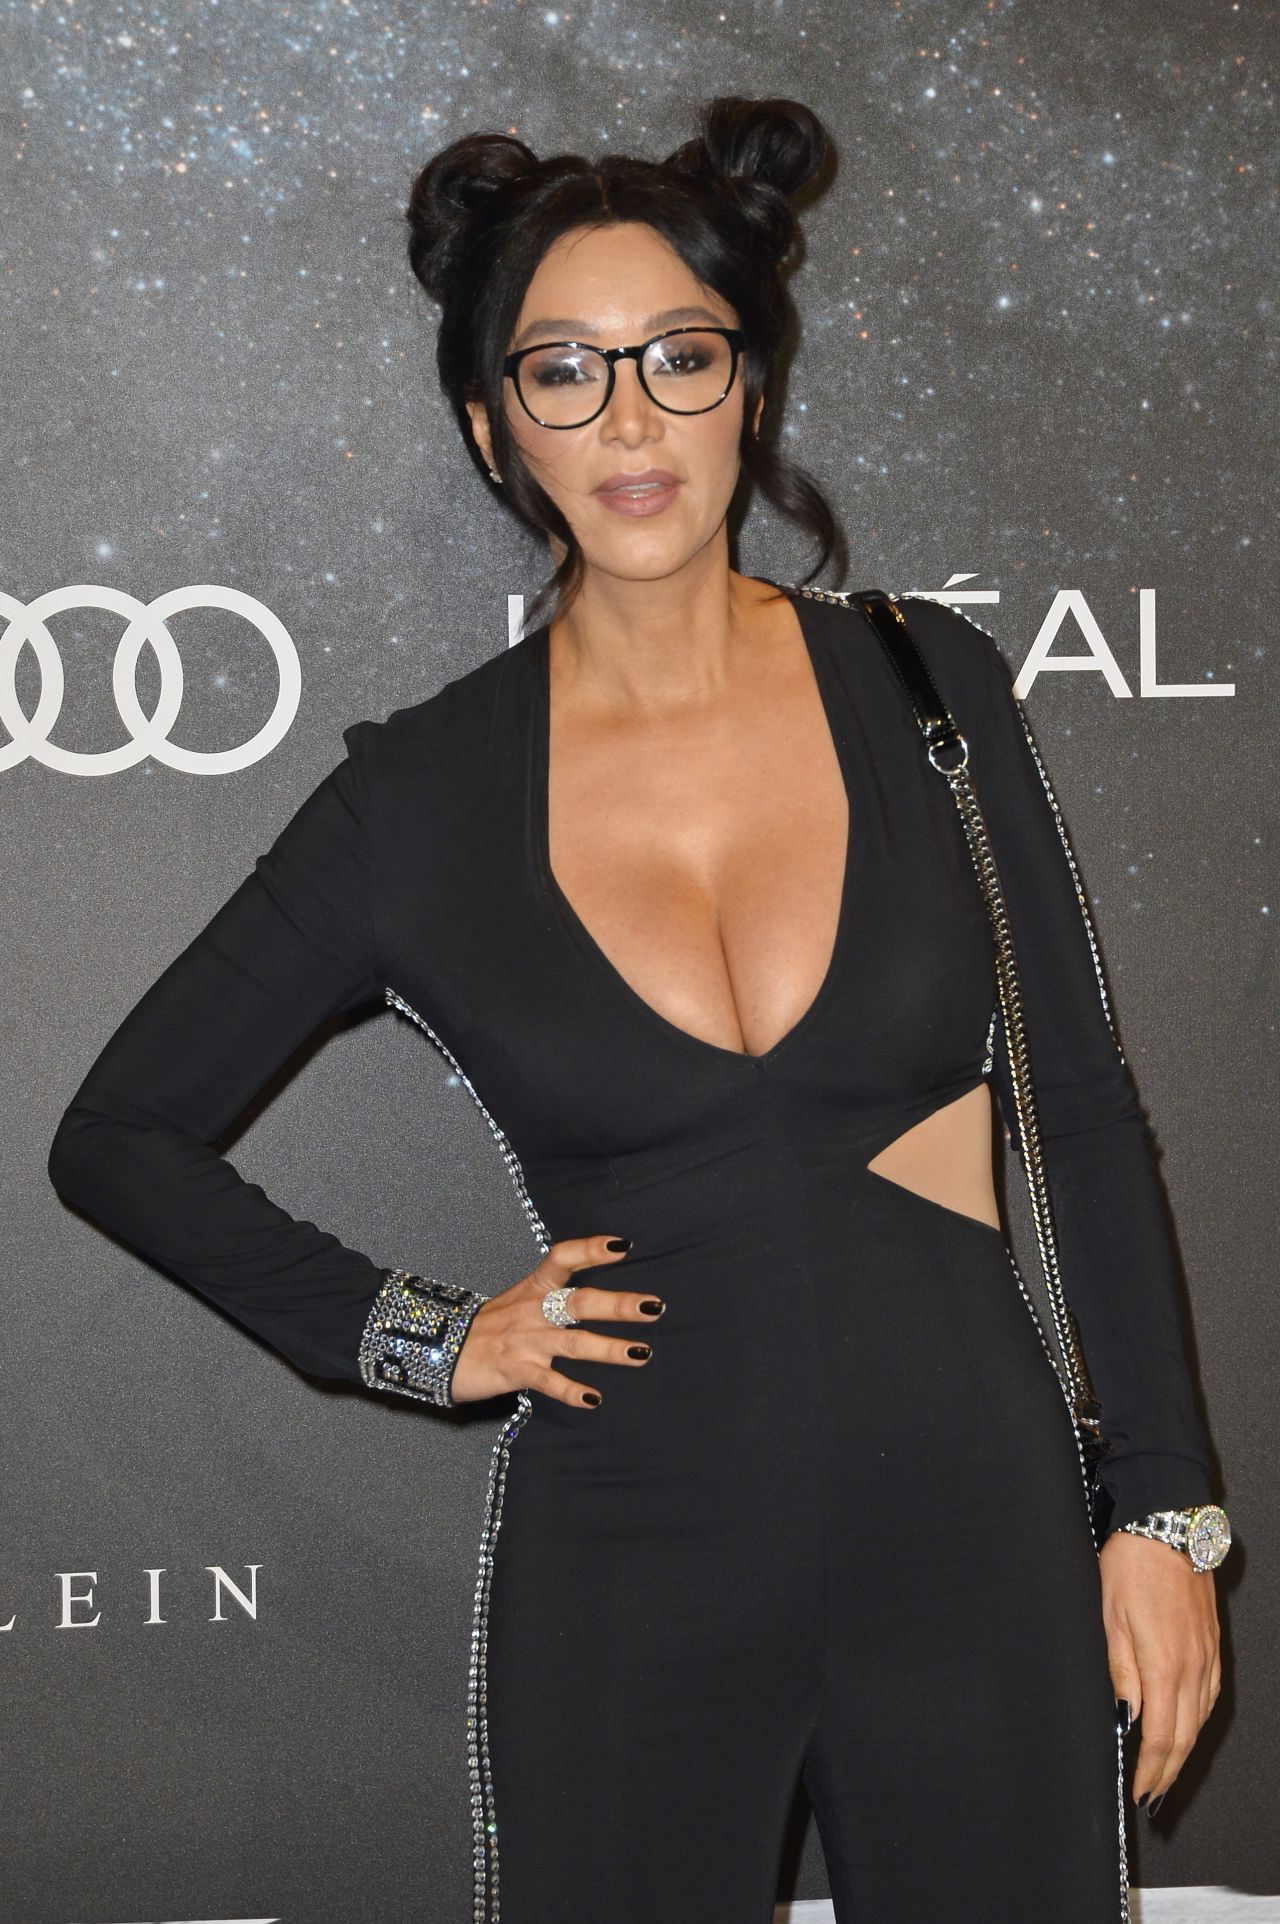 Verona Pooth - PLACE TO B Berlinale Party 2019 • CelebMafia